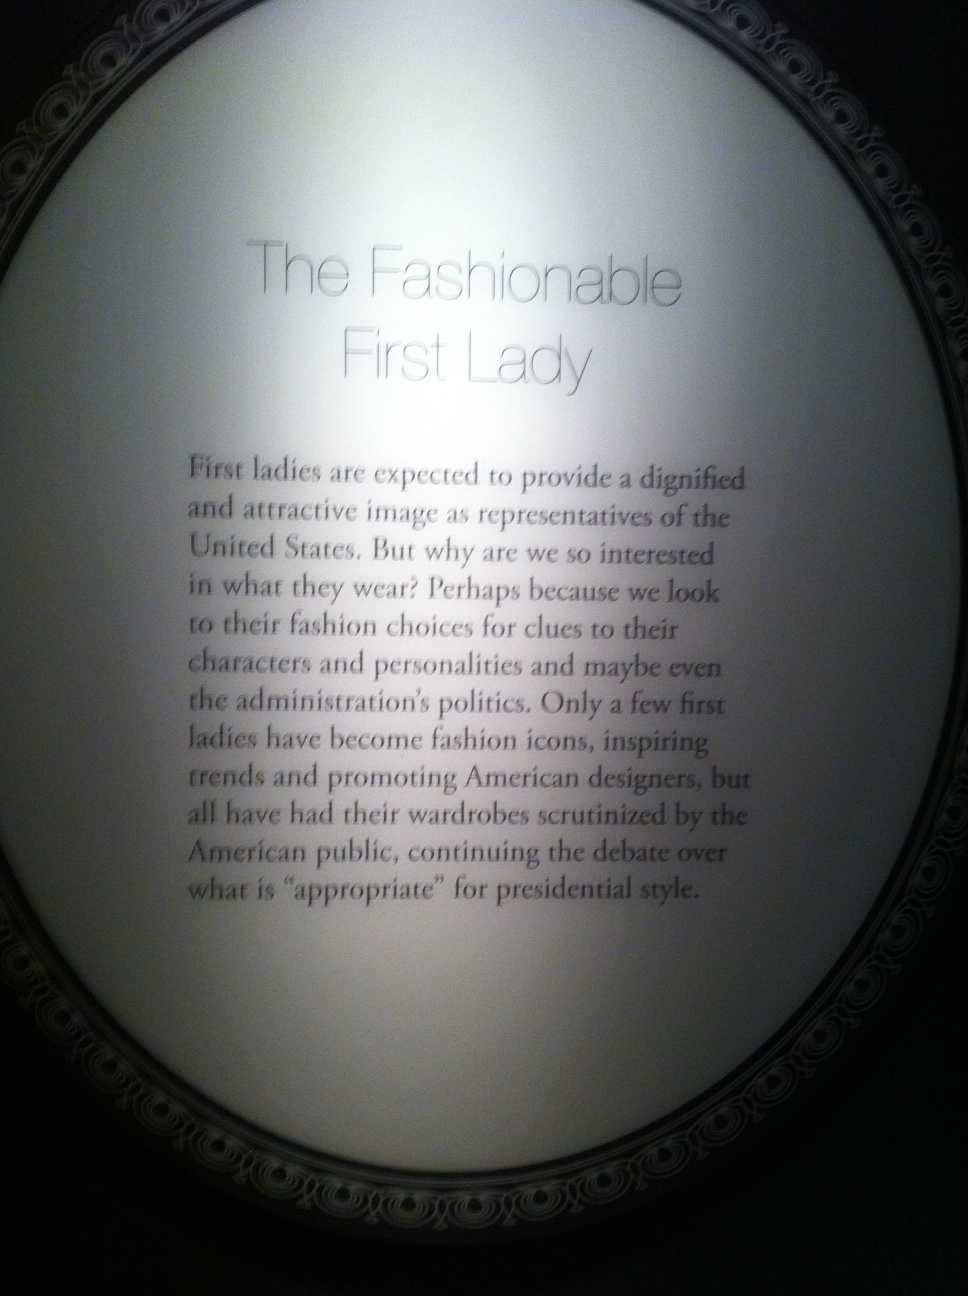 Museum of American History - First lady dresses plaque